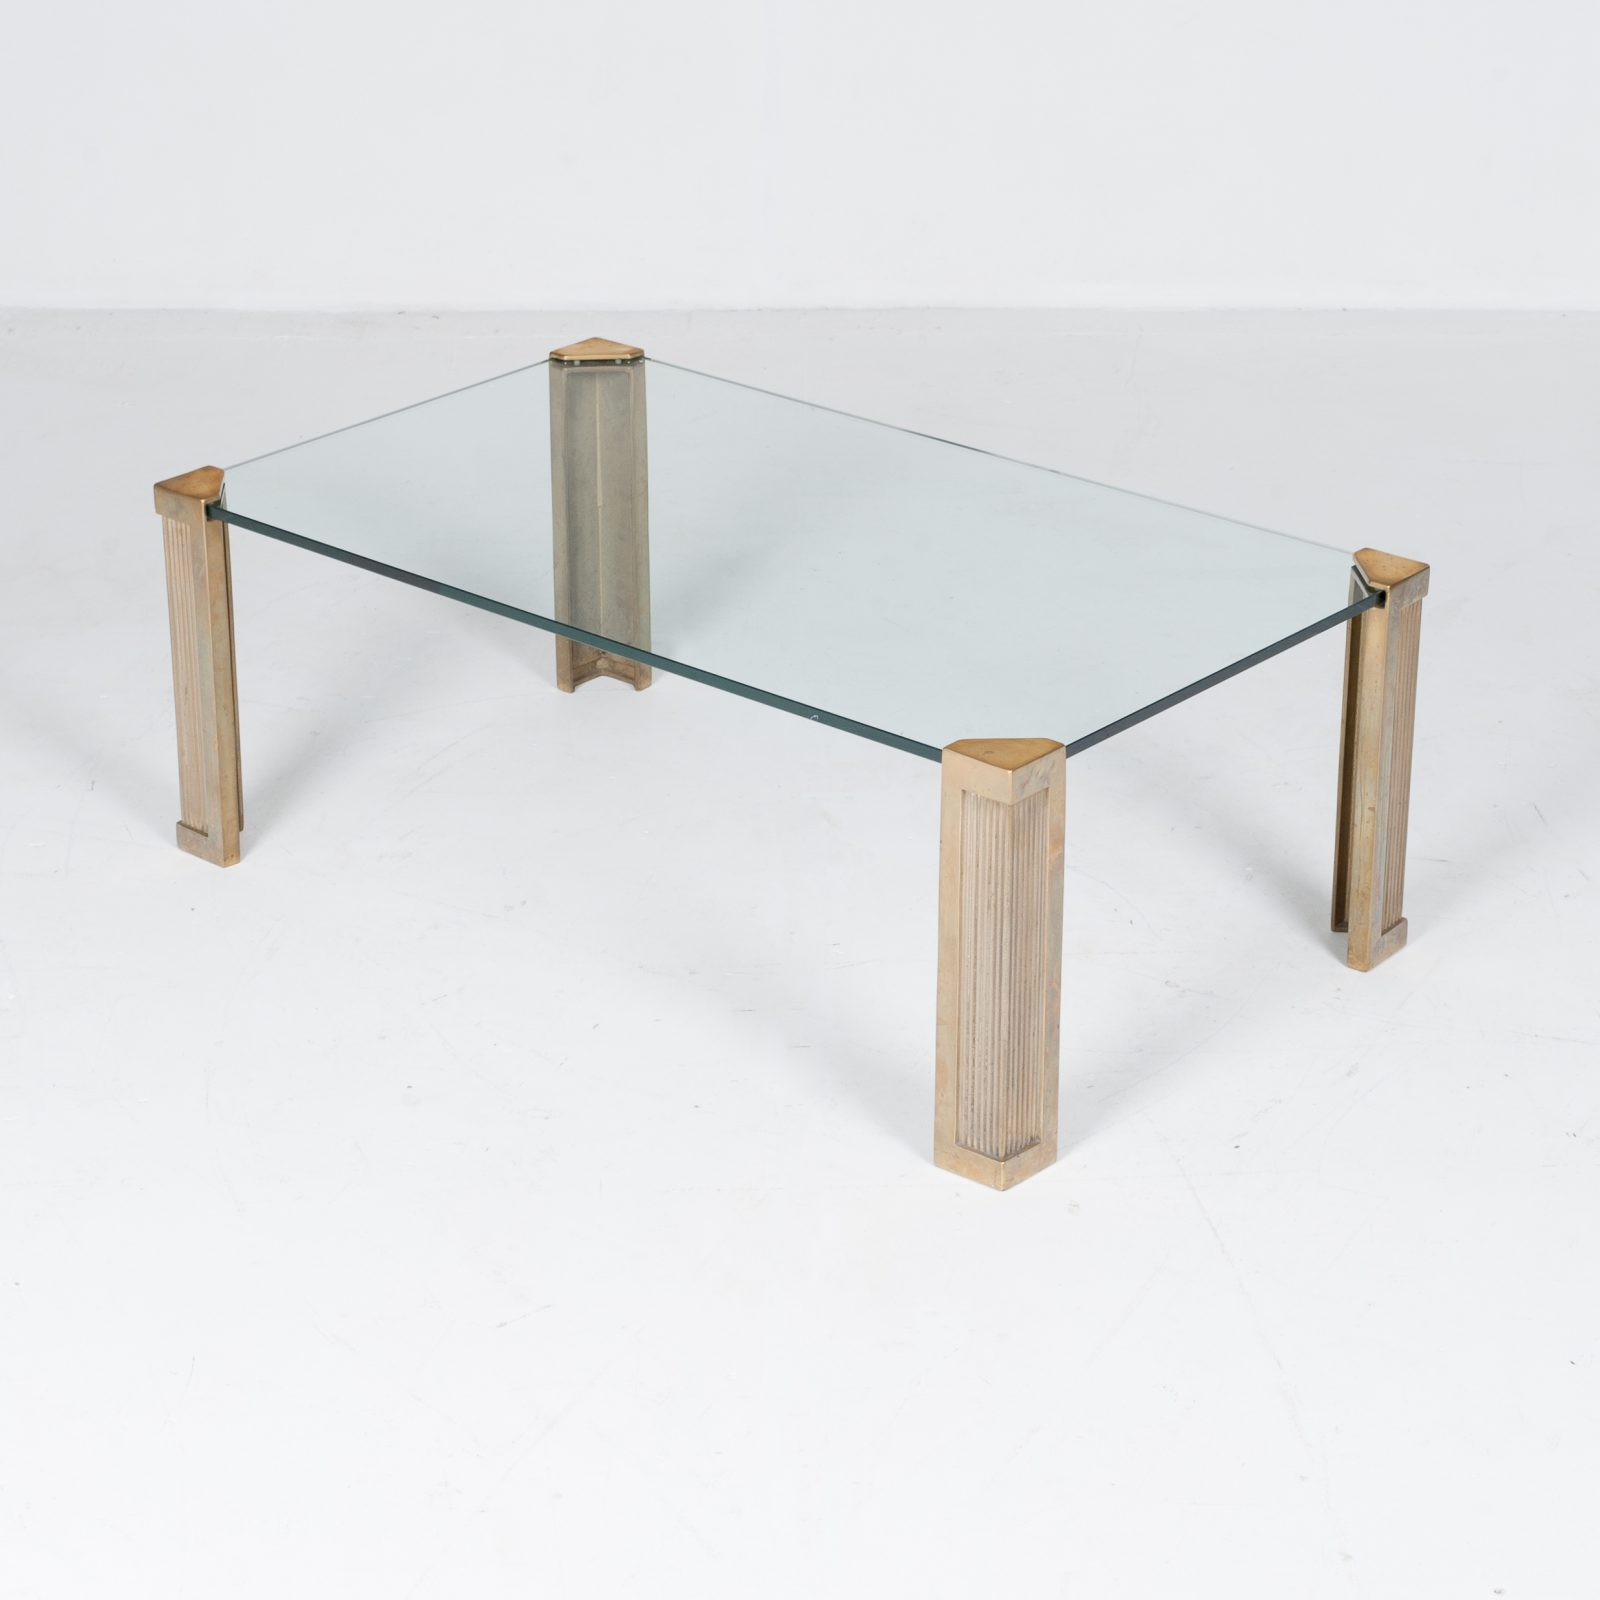 Rectangular Coffee Table In Brass And Glass By Peter Ghyczy, 1970s, The Netherlands 4